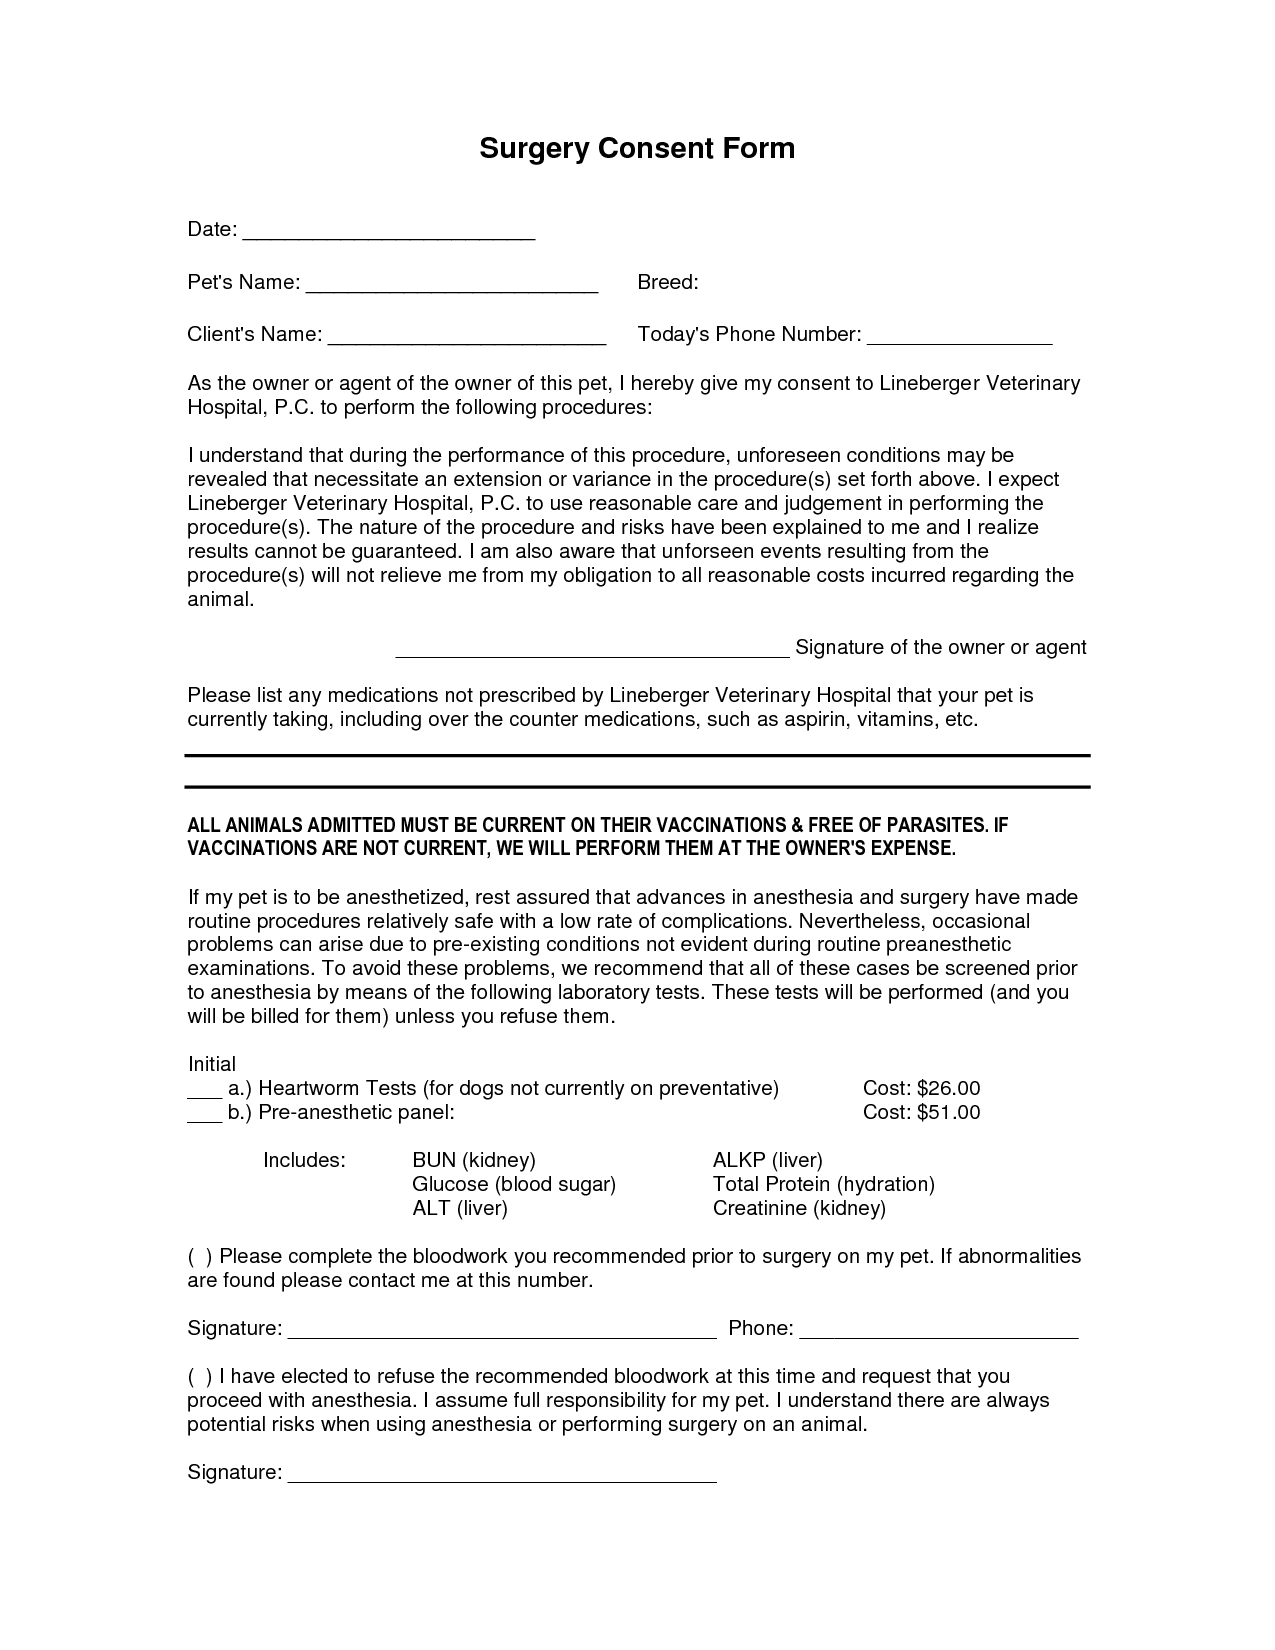 Surgery Consent Forms Templates  Consent Form